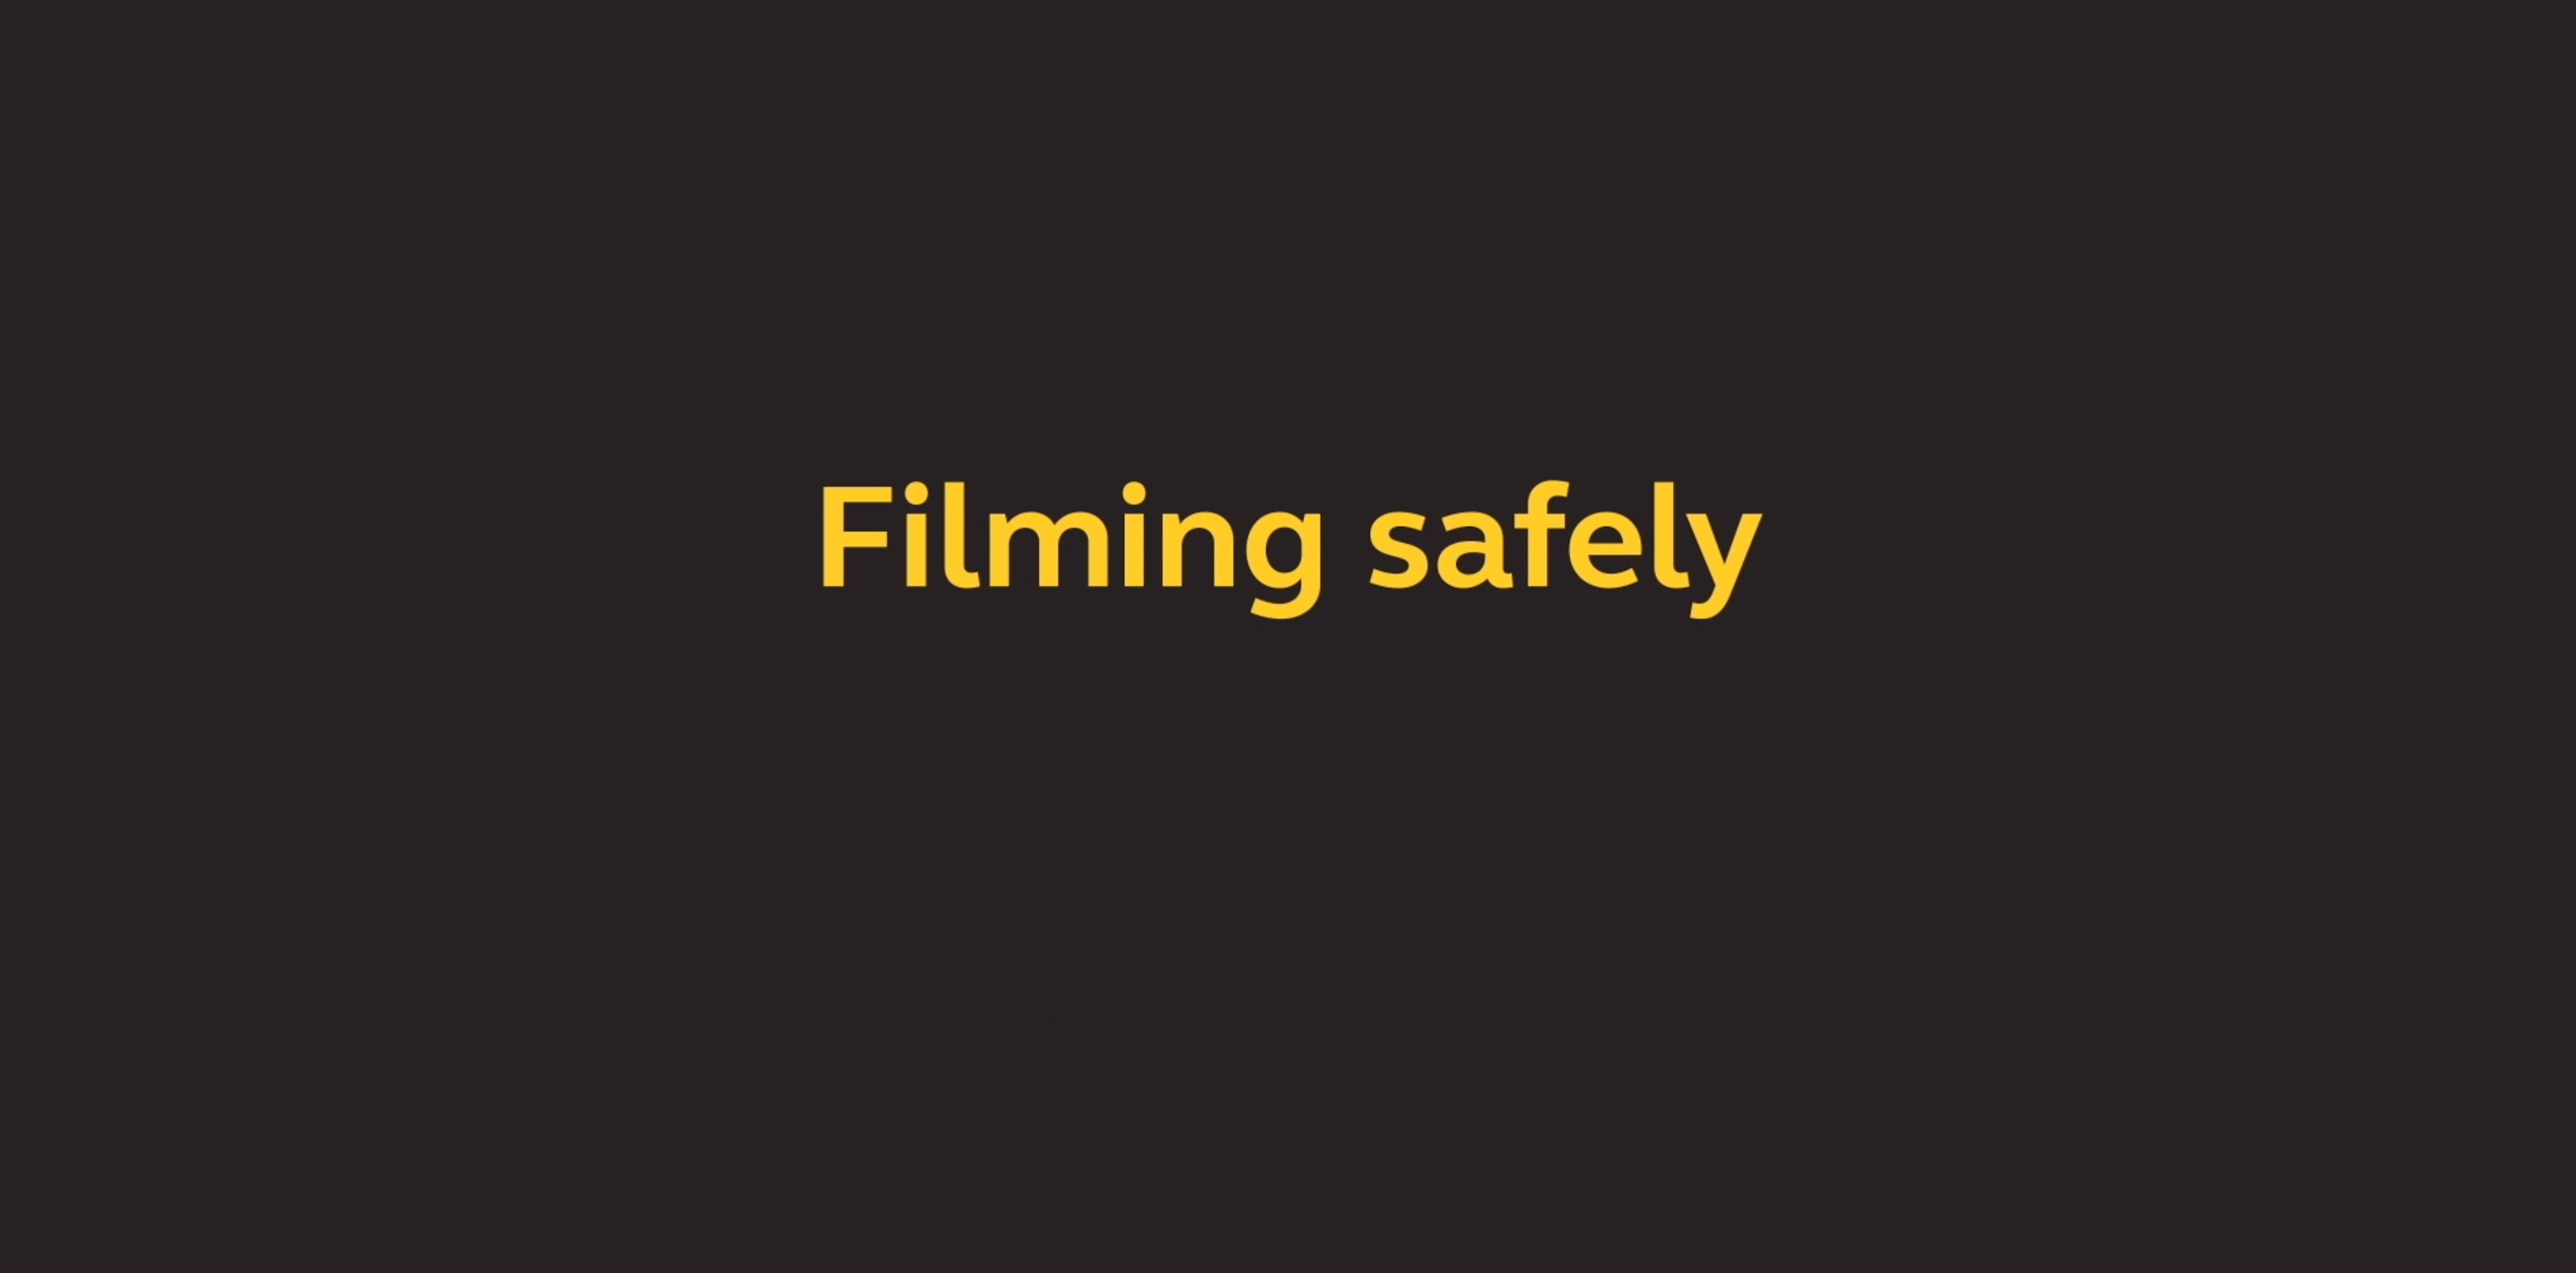 Filming Safely